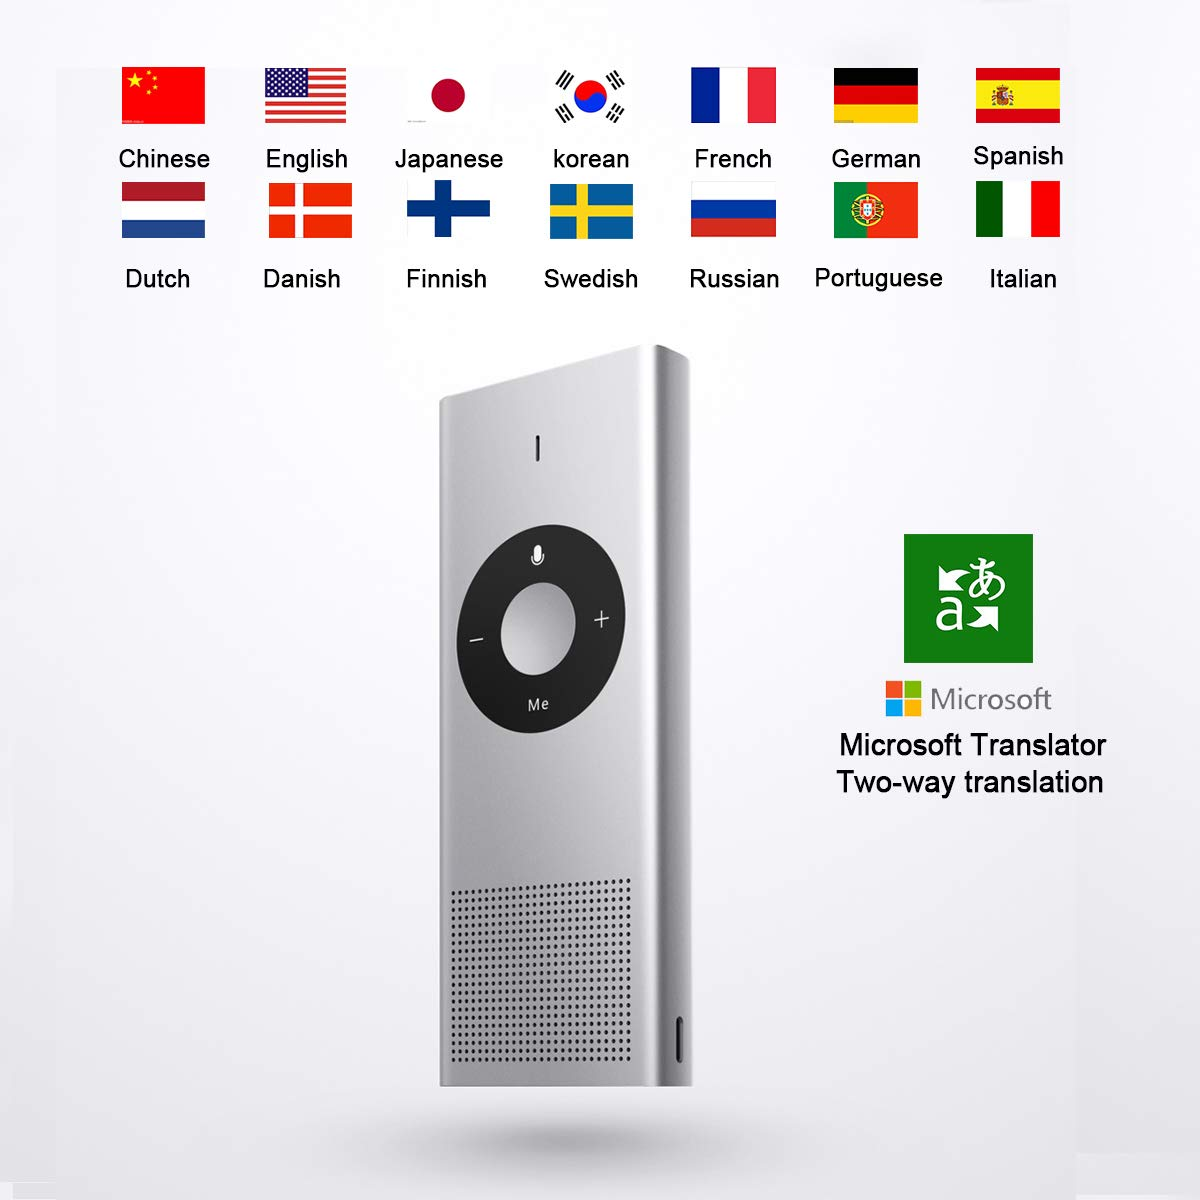 Moyu Xiaomi Mijia AI Smart Language Portable Translator Device, Microsoft Real-Time Intelligent Two-Way Voice Translation, Hotspot WiFi Connection 14 Languages - Silver